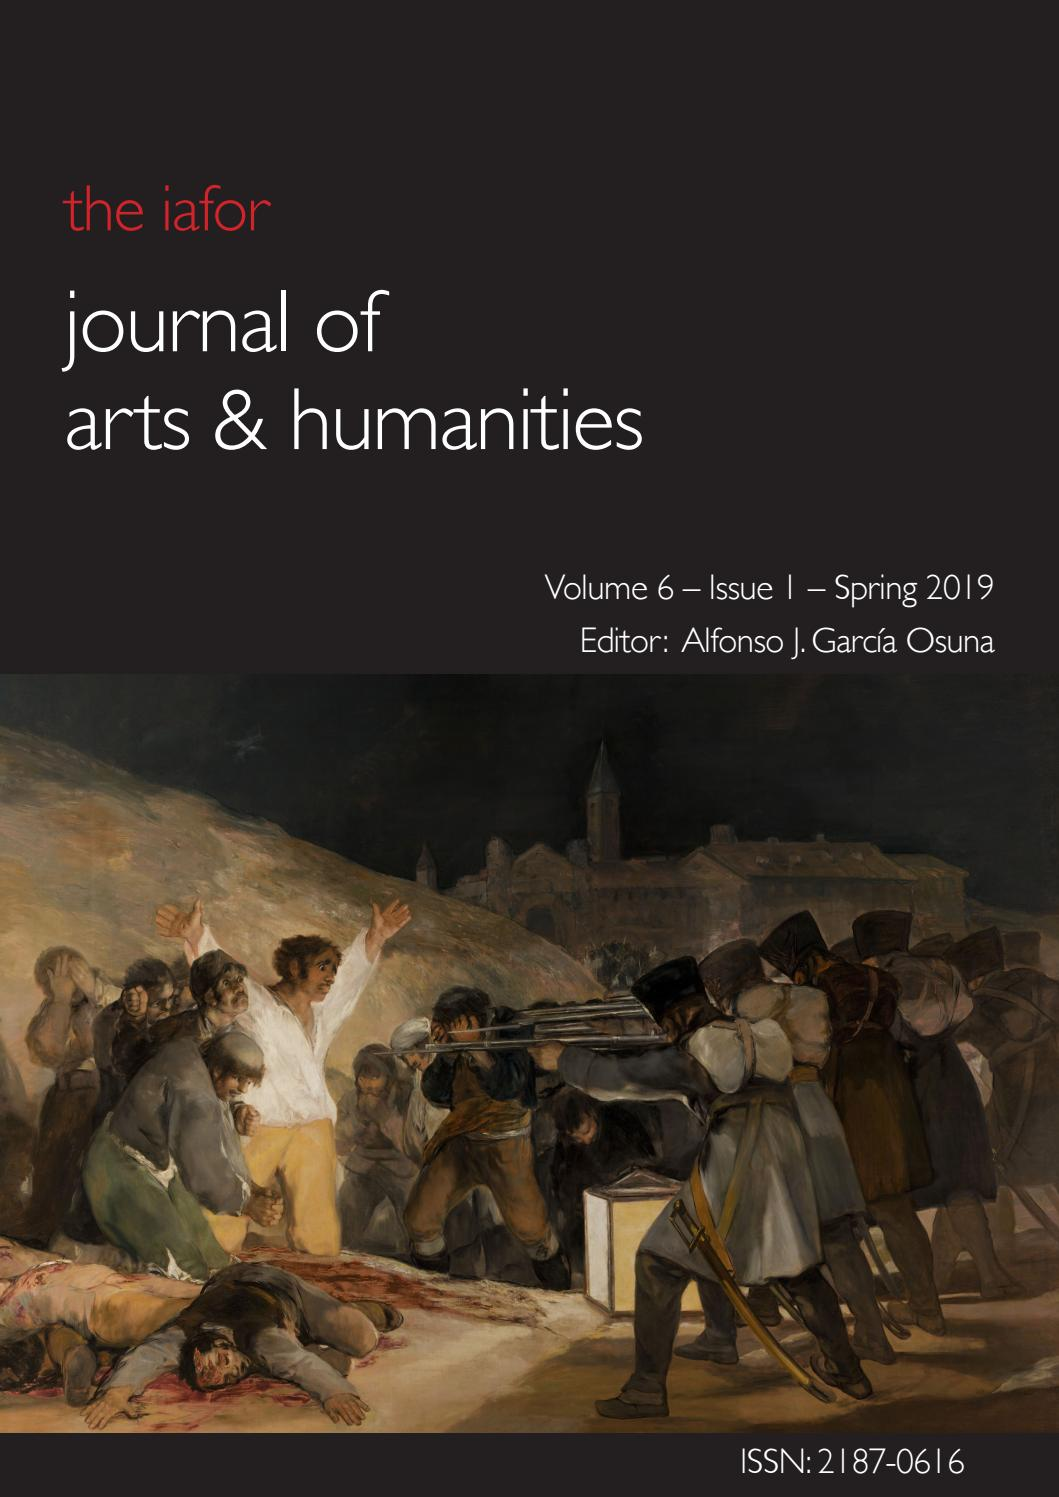 IAFOR Journal of Arts & Humanities: Volume 6 – Issue 1